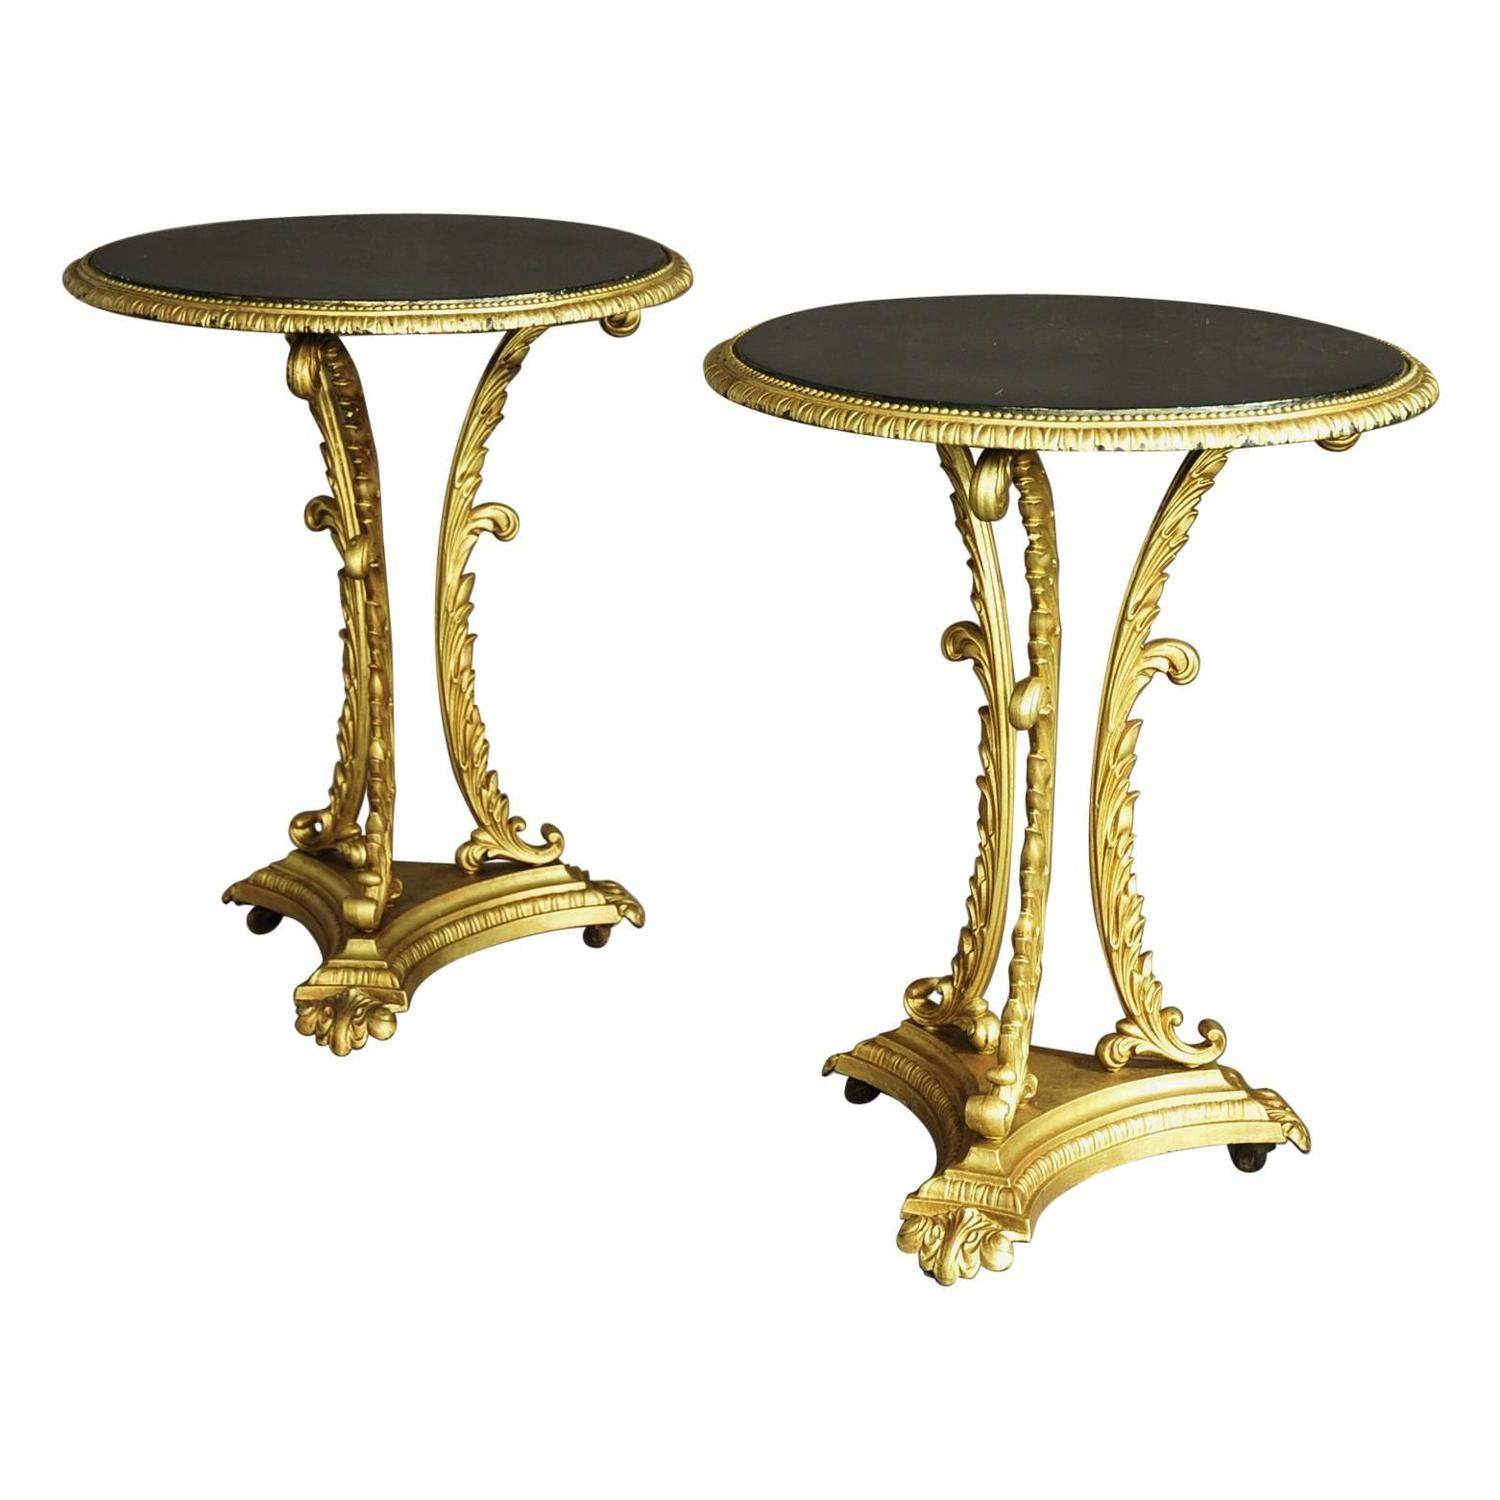 Pair Of French Highly Decorative Painted Cast Iron Tables At 1stdibs